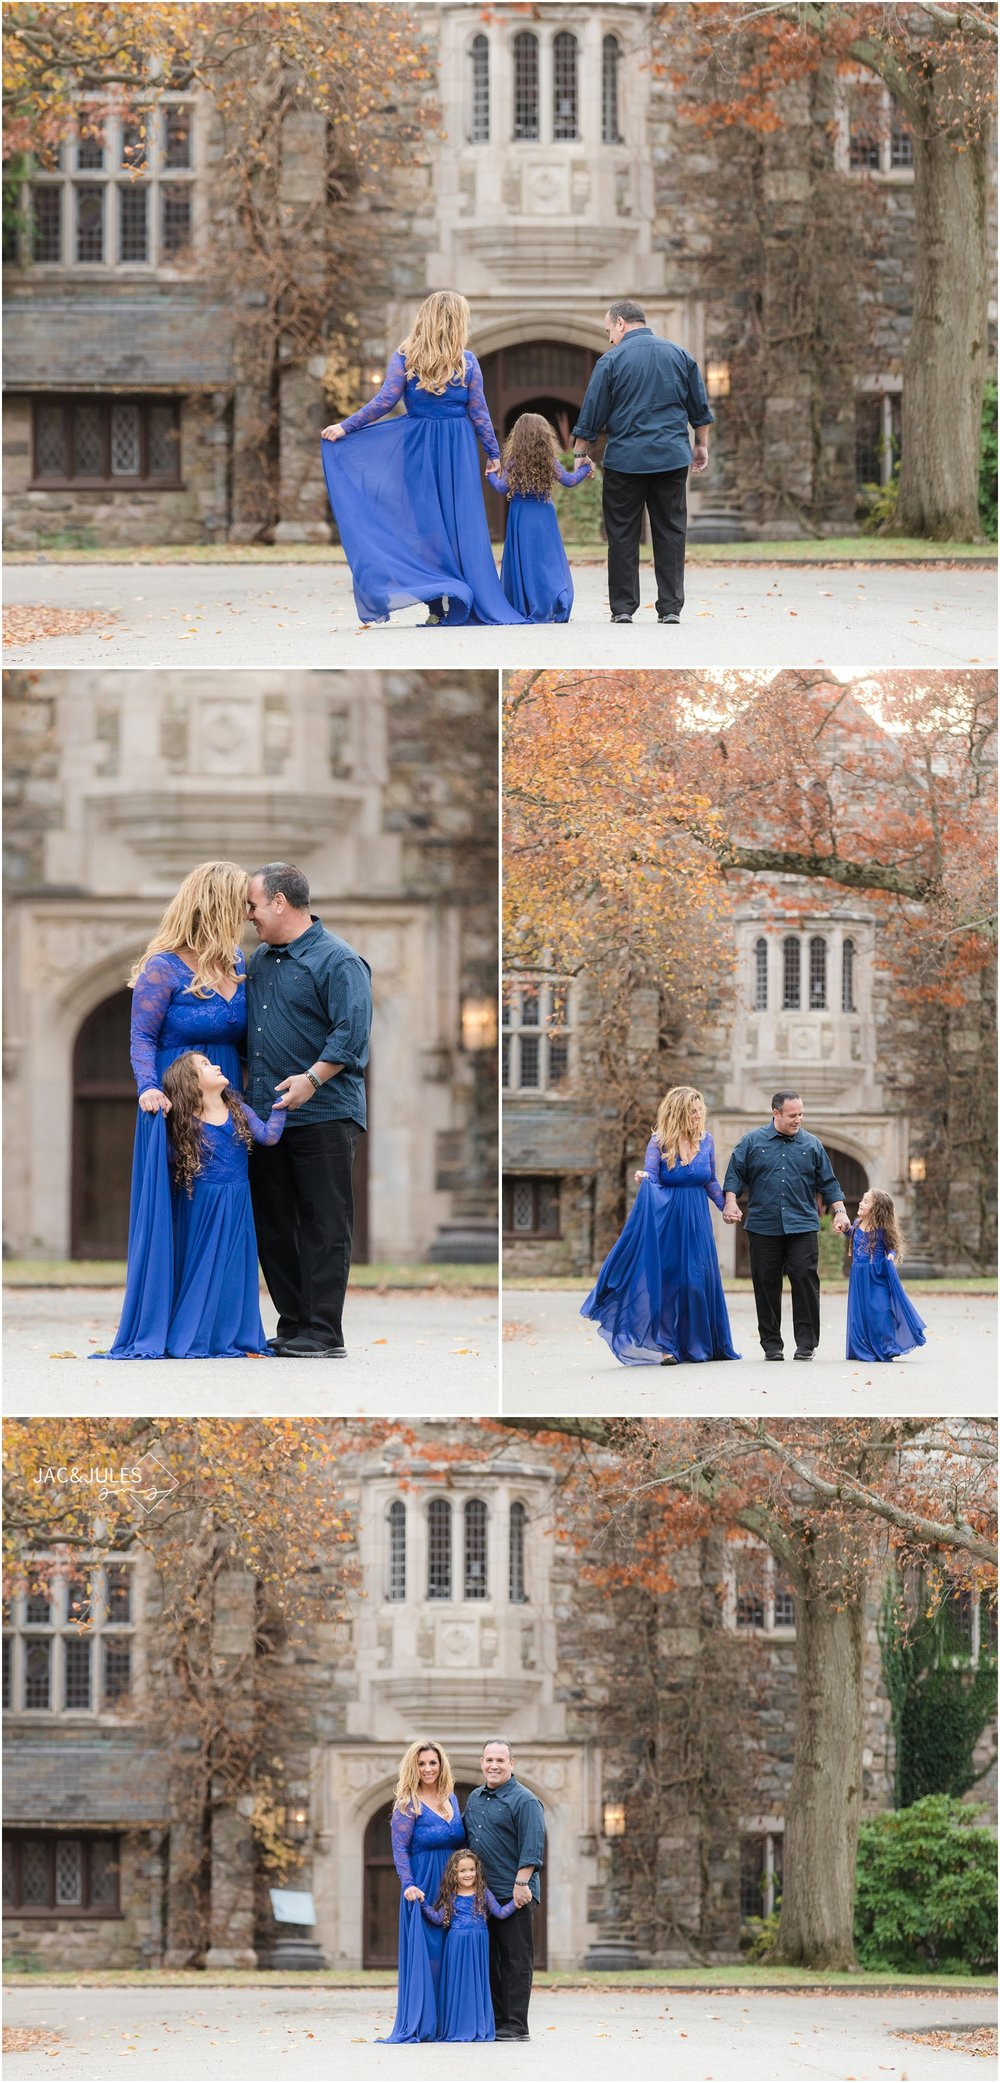 Family of three with flowing blue dresses in front of the castle at Skylands Manor in Ringwood, NJ.